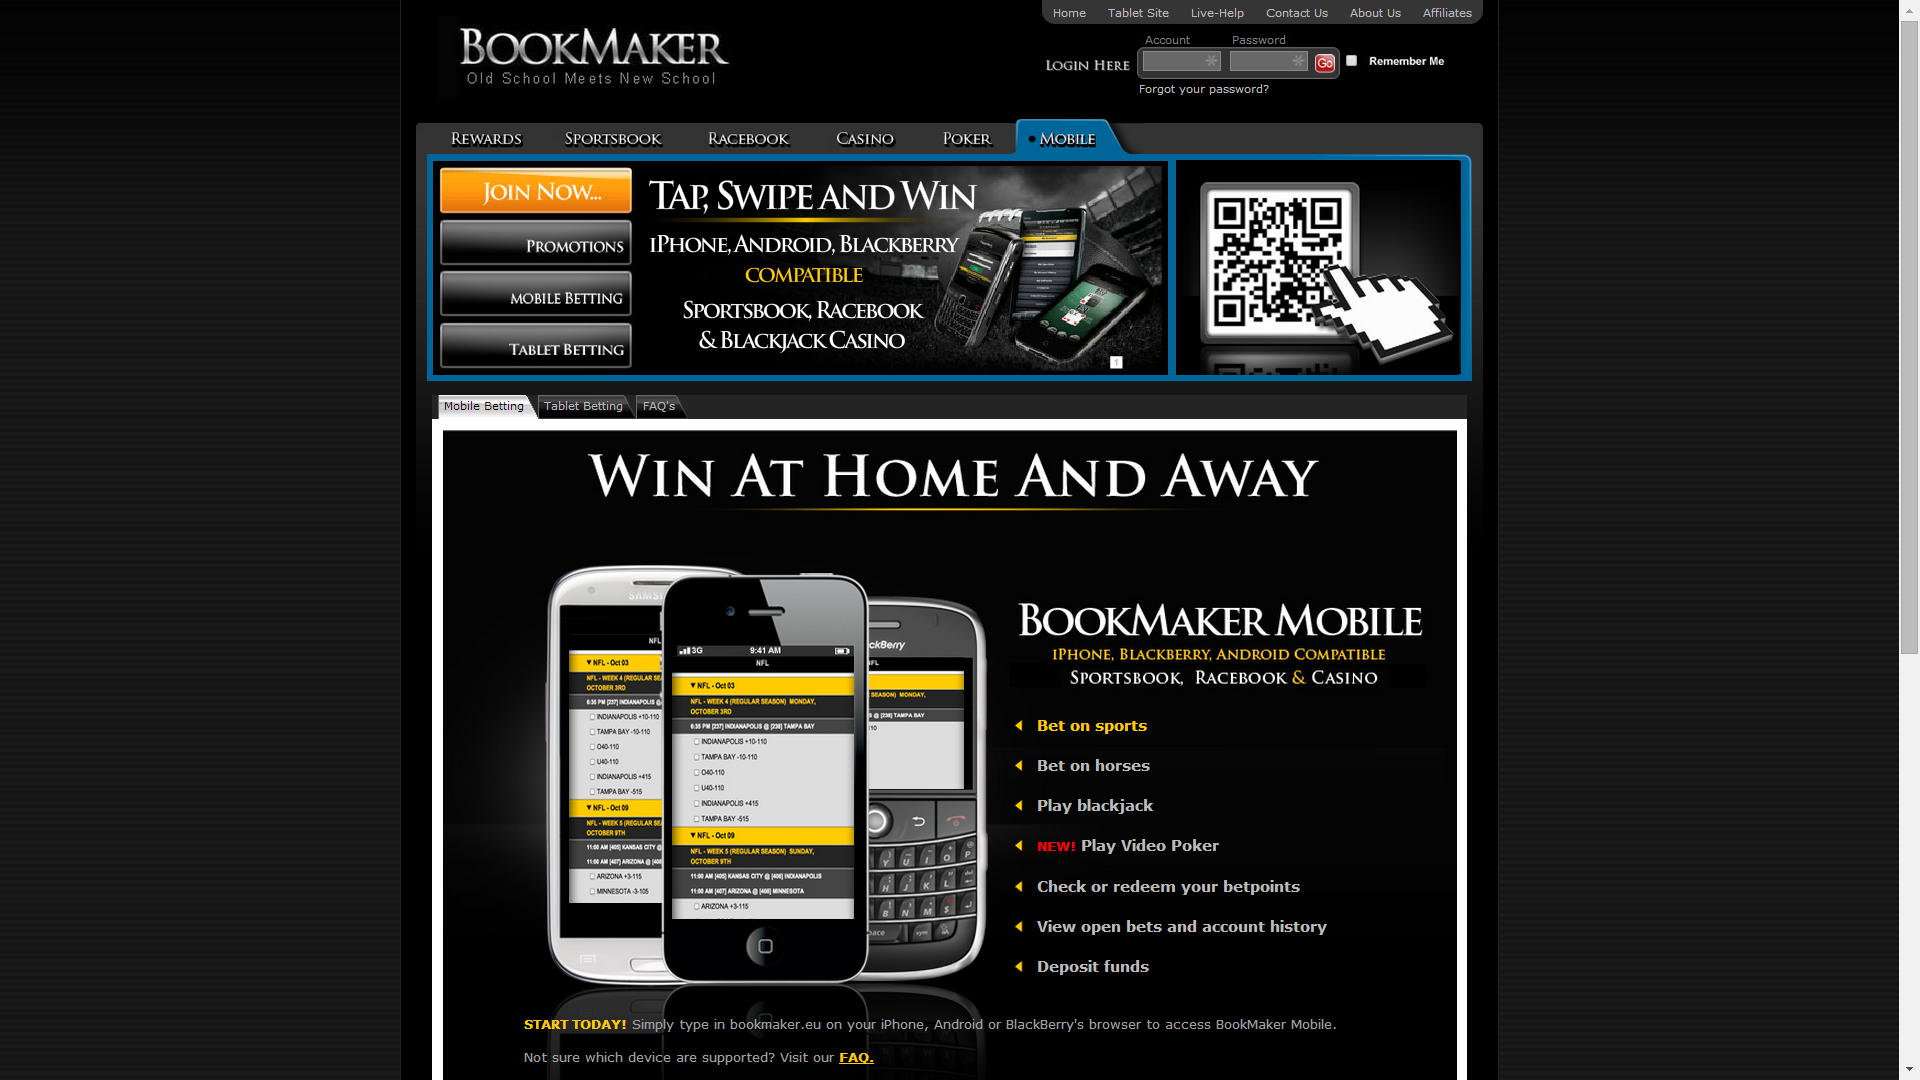 Bookmaker onlinegambling the casino at empire